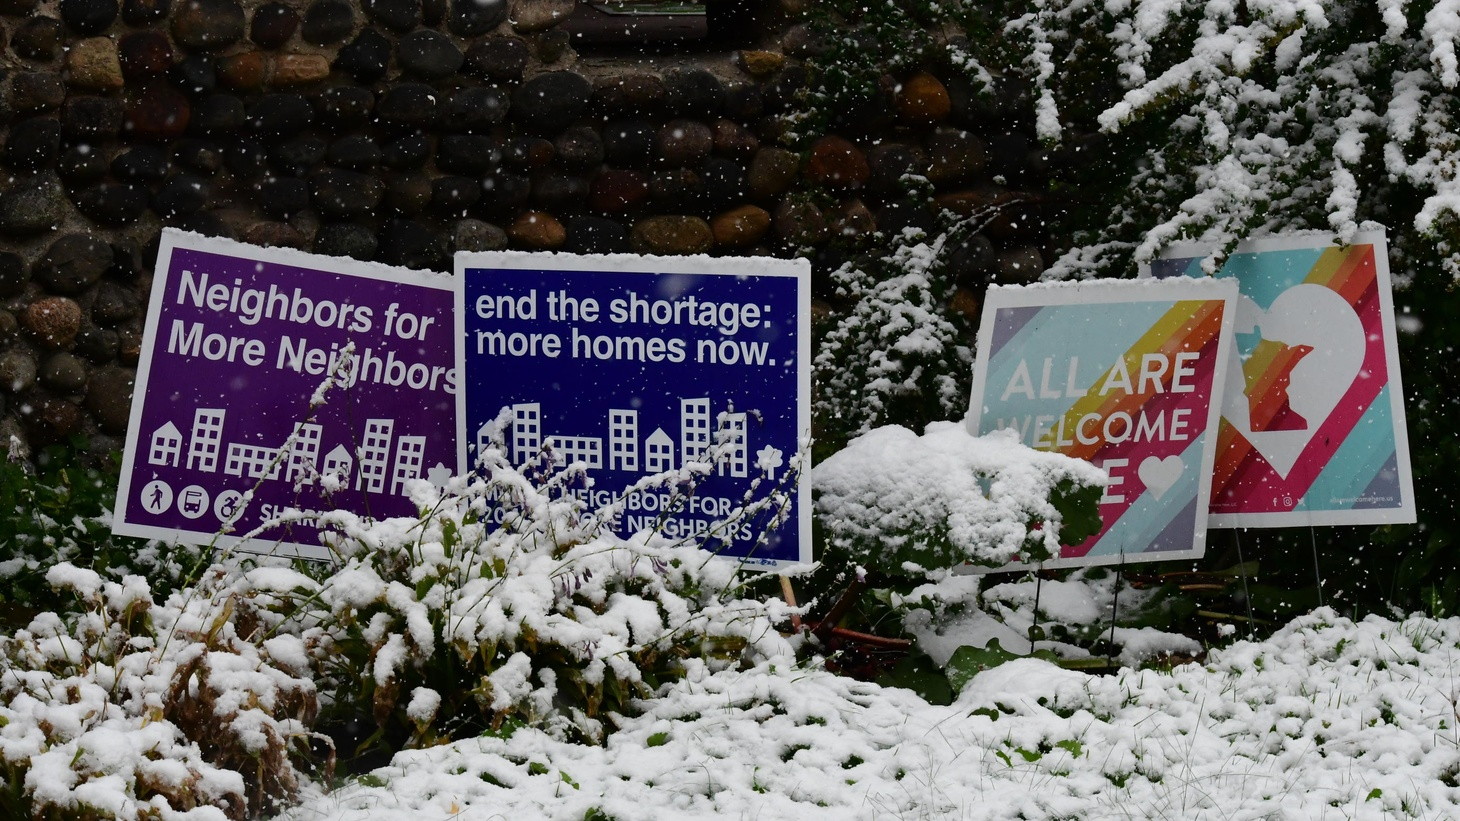 Yard signs in Minneapolis in support of the Minneapolis 2040 comprehensive plan, which will upzone the city's single-family neighborhoods.